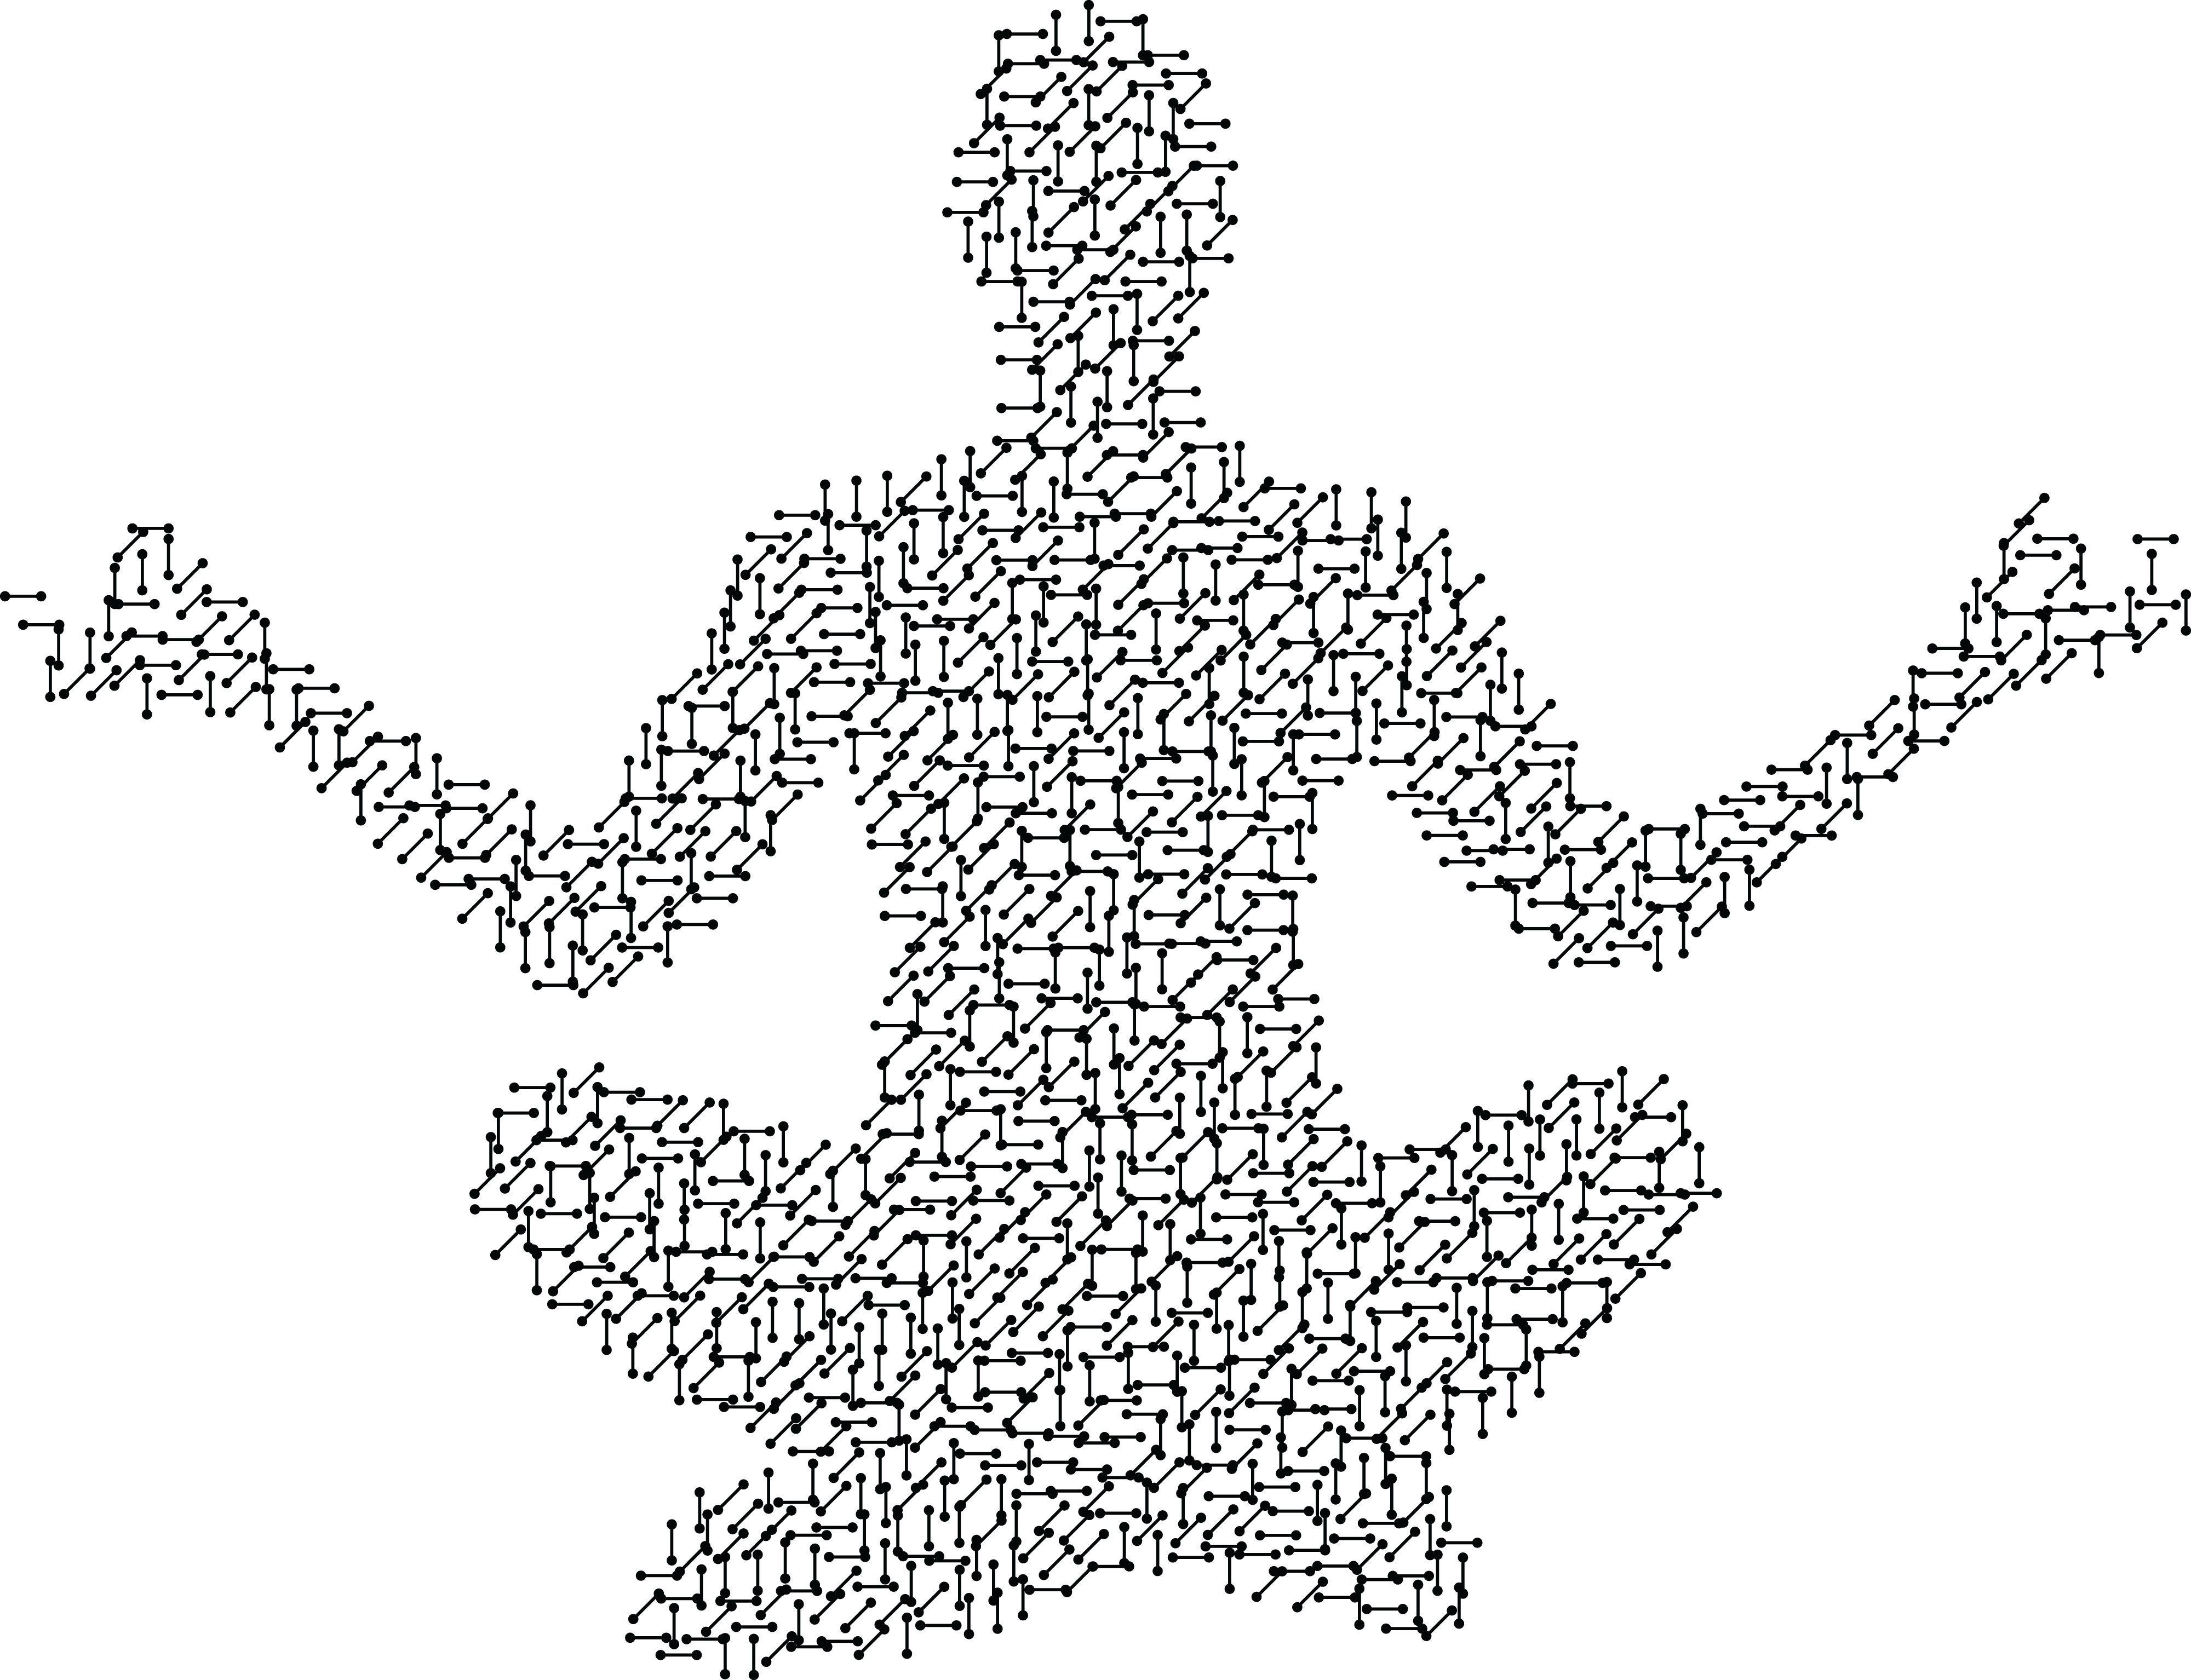 Meditation Png Free Clipart Of A Circuit Patterned Person Meditating Yoga Man Silhouette 803528 Vippng